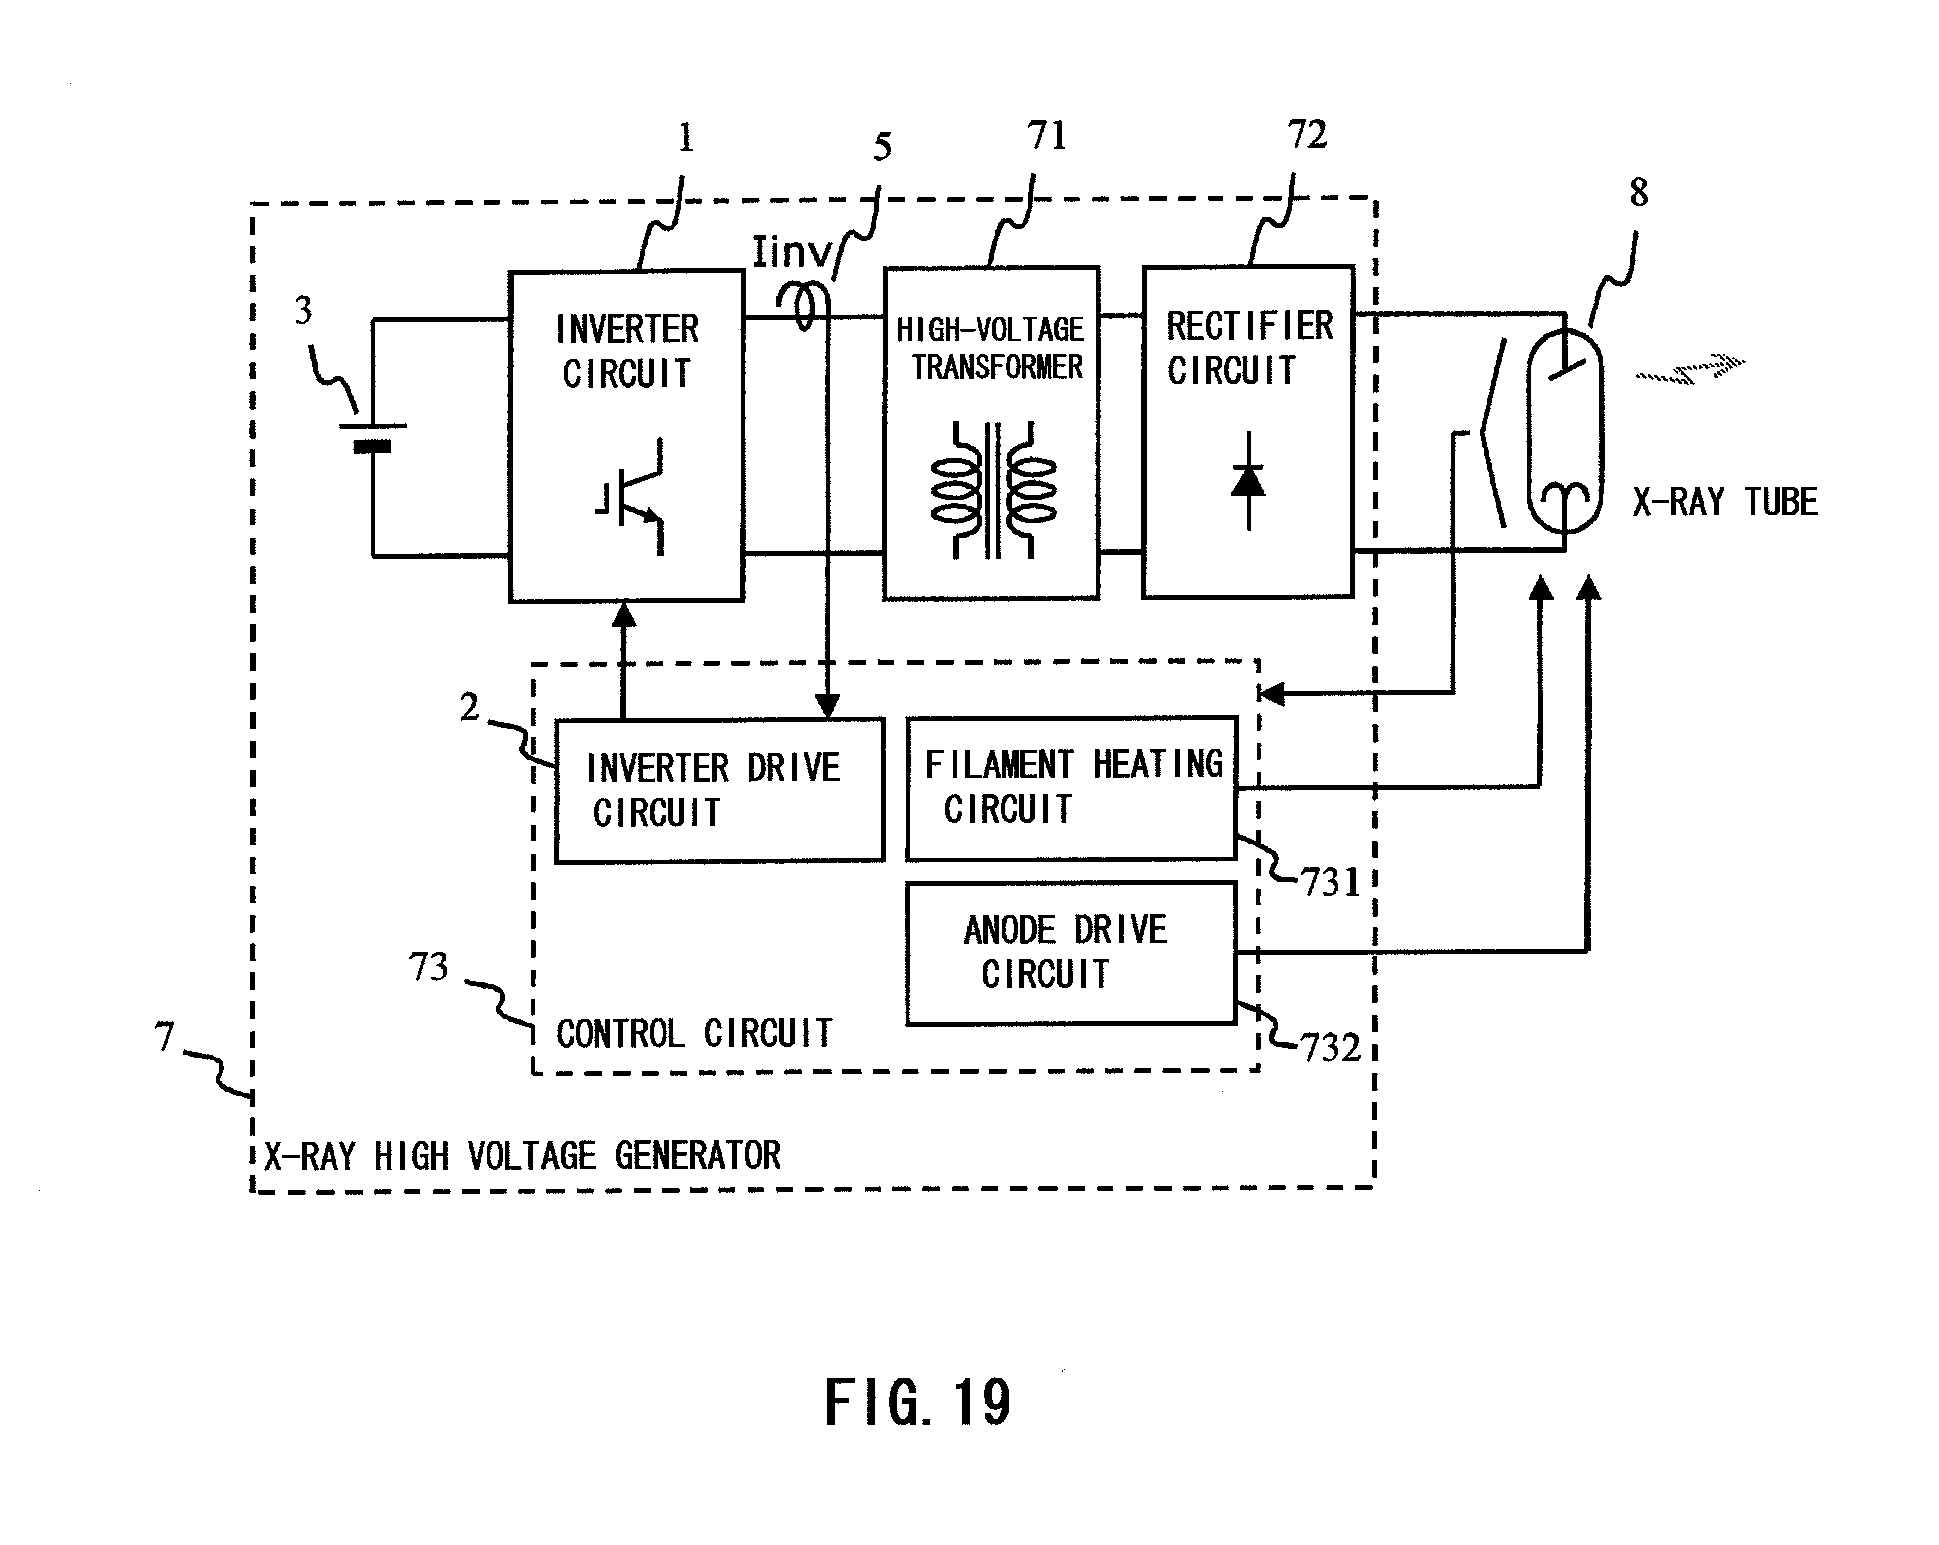 Us20110222651 Phase Shift Inverter X Ray High Voltage Rectifier Circuit Patent Drawing